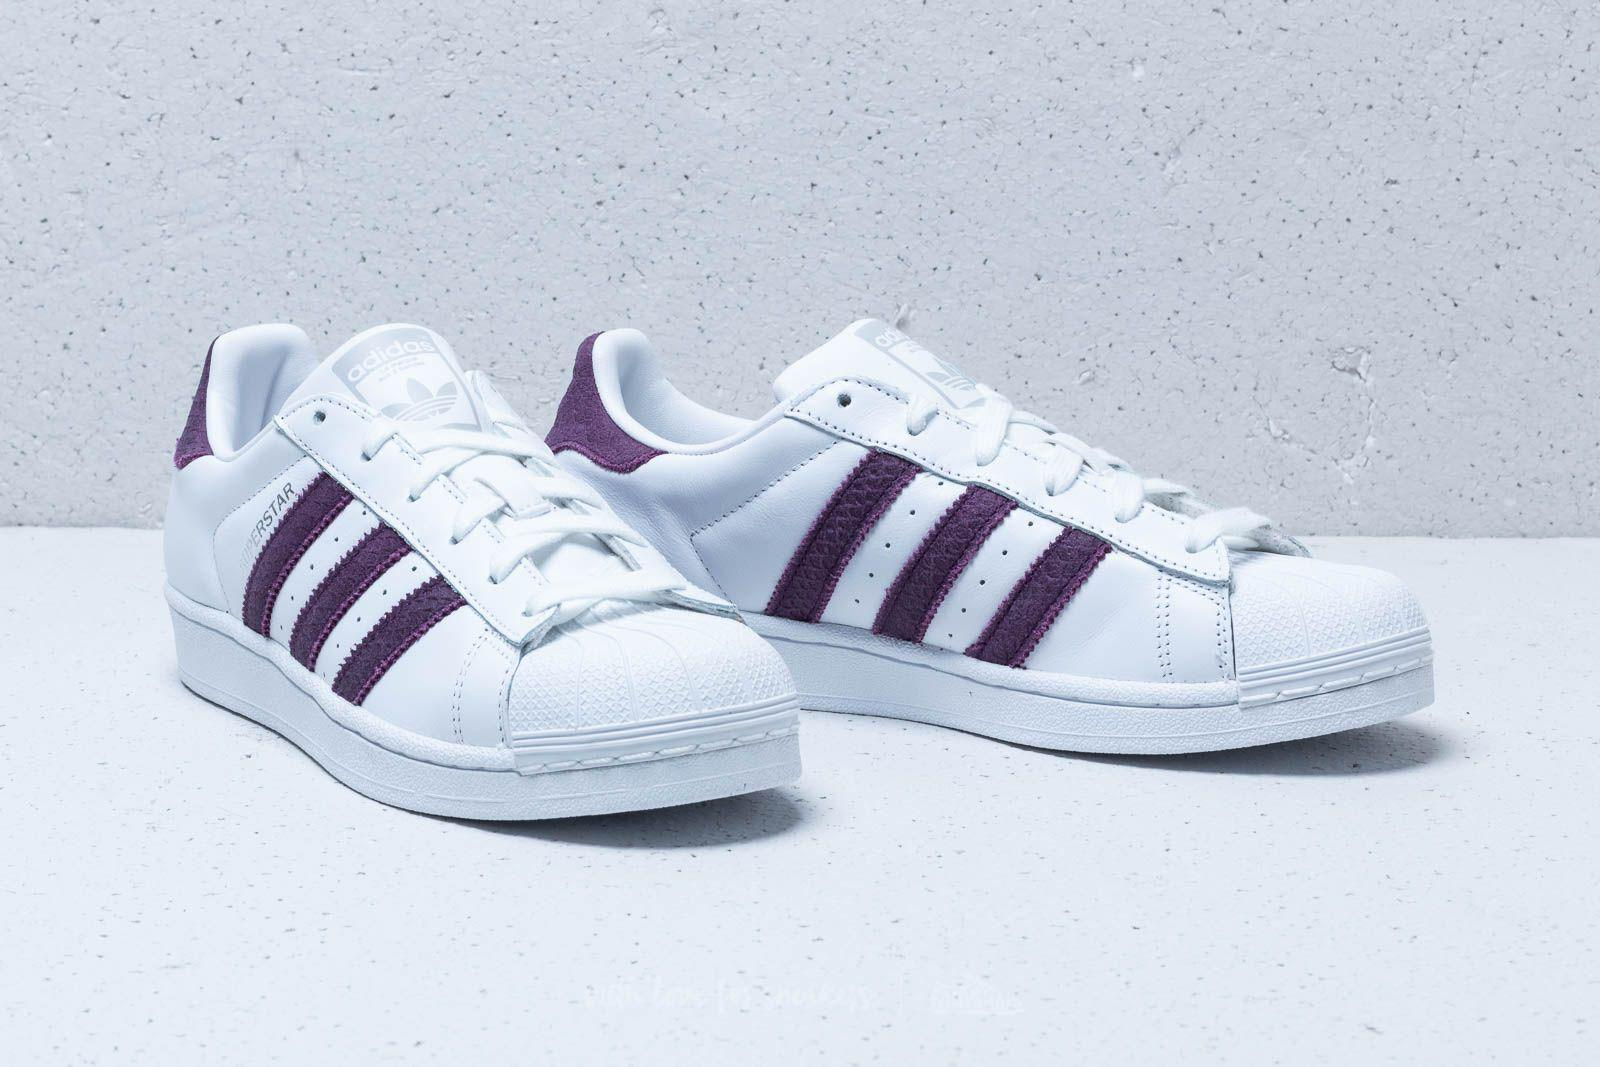 6e7c95d0ca16 Lyst - adidas Originals Adidas Superstar W Ftw White  Red Night ...